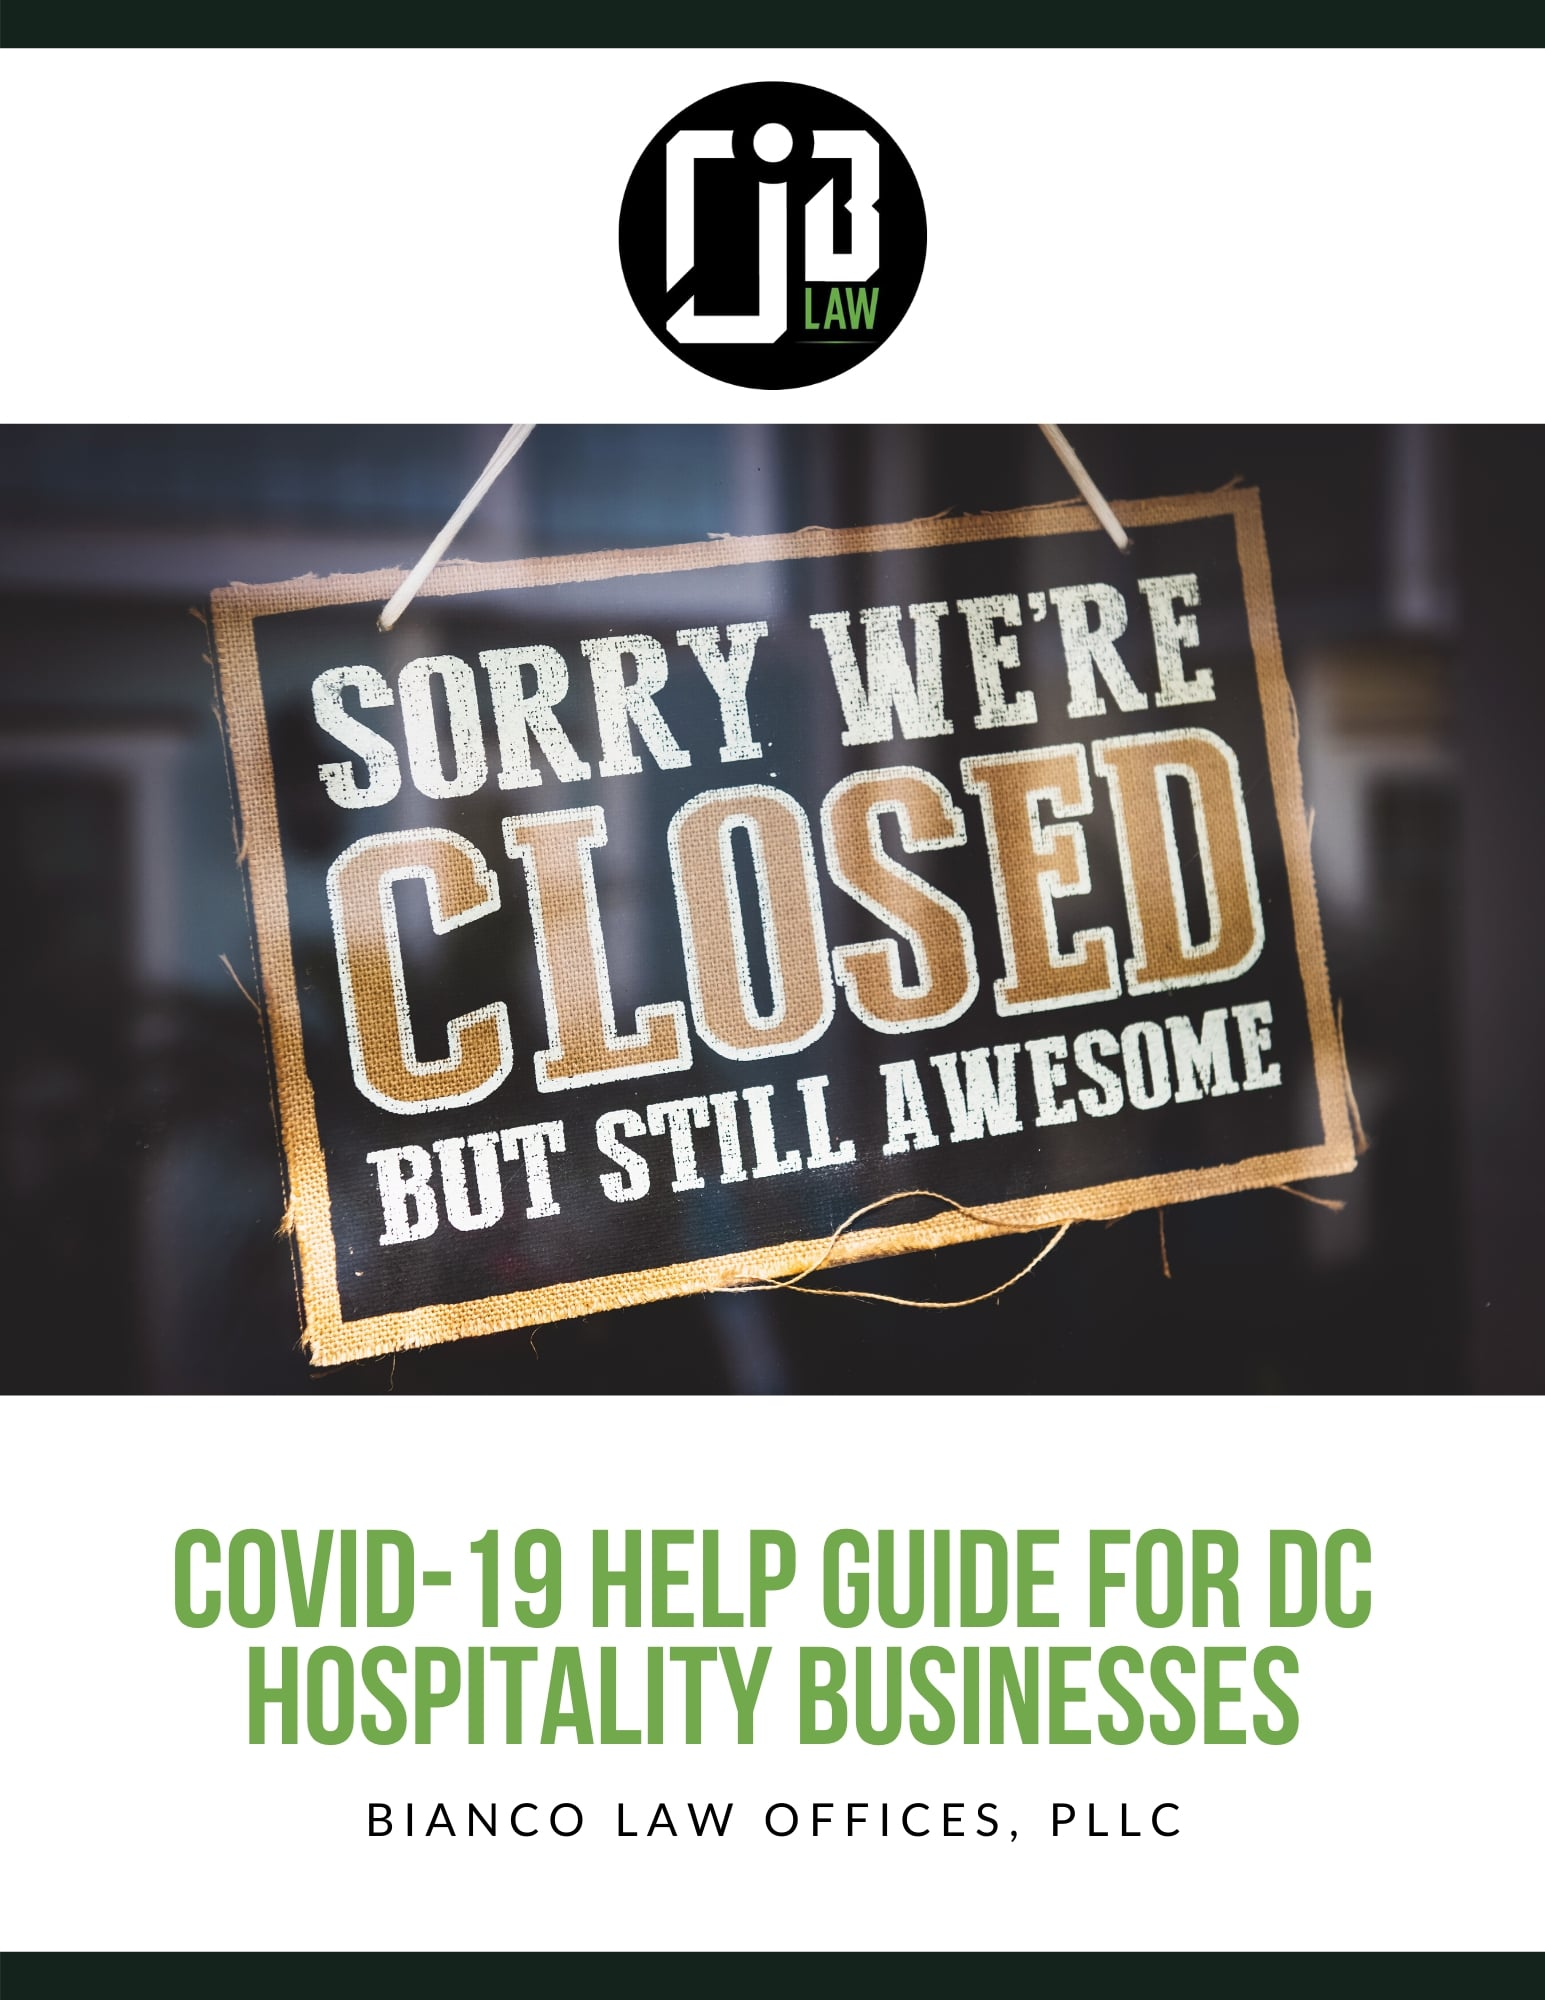 COVID-19 Help Guide For DC Bars & Restaurants